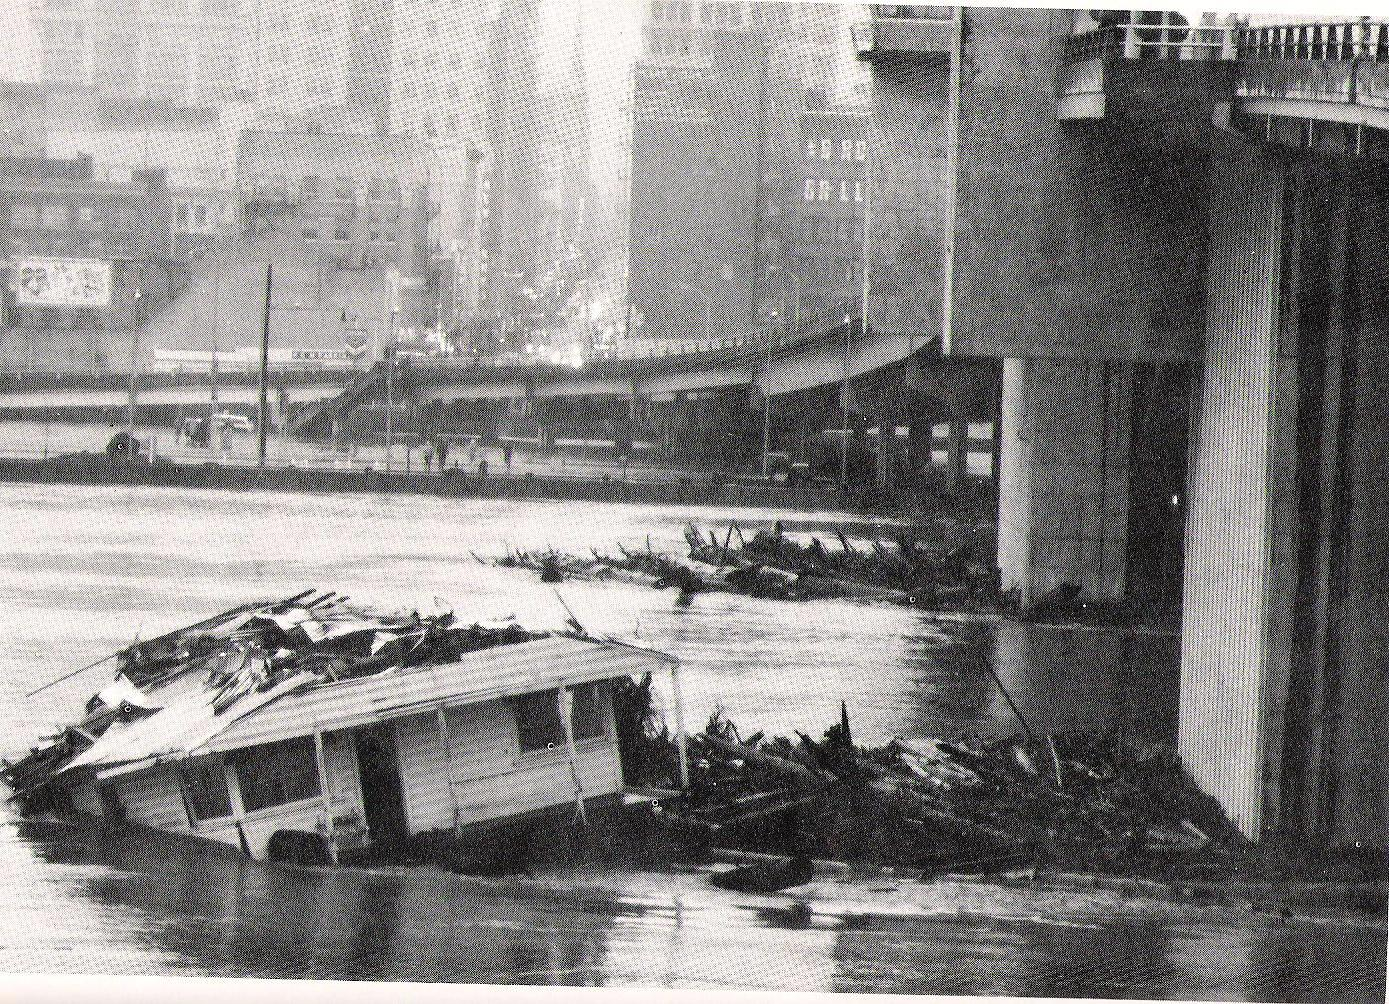 Floating home damaged during Christmas Flood of 1964